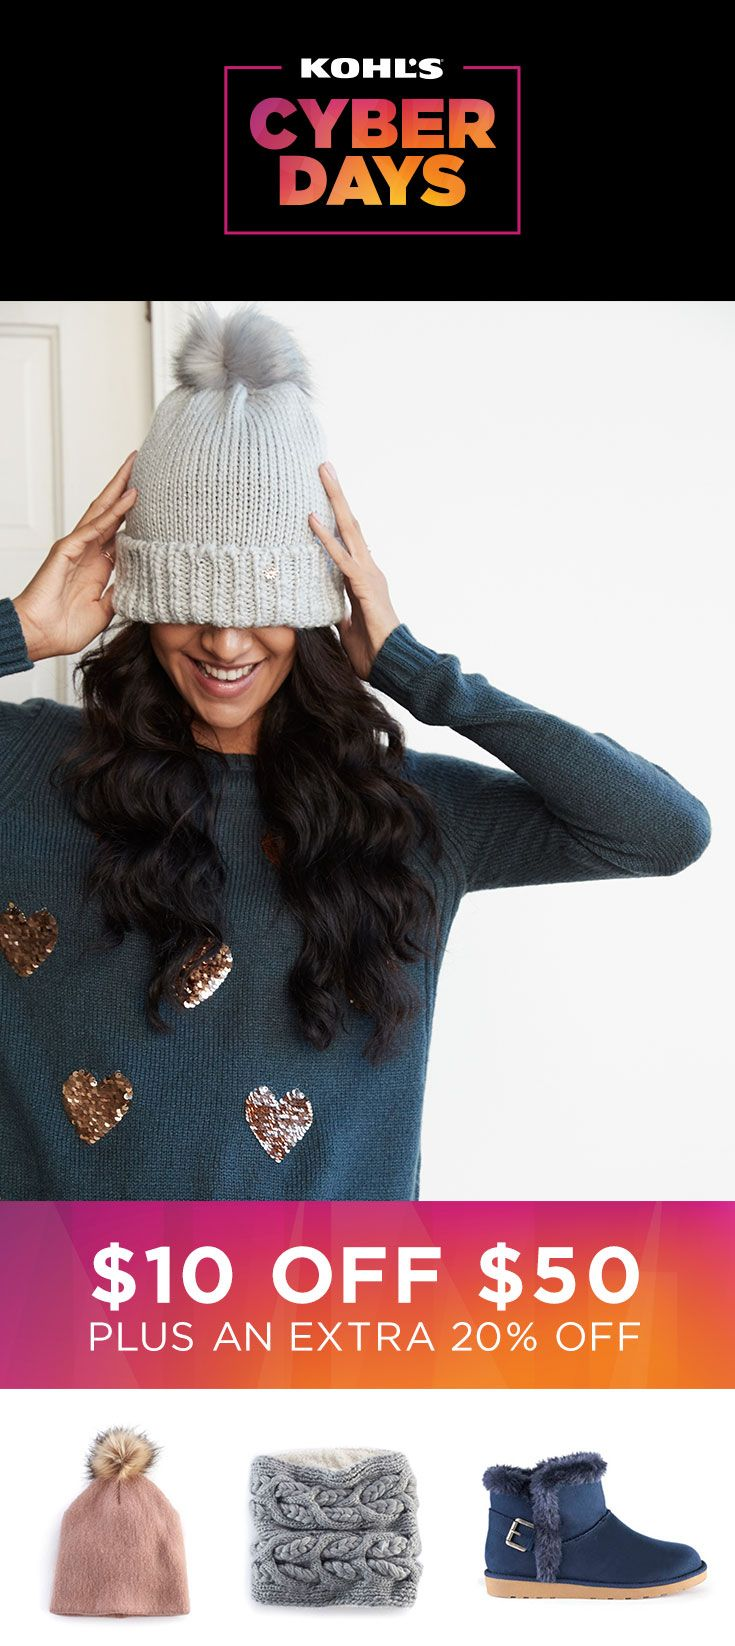 Give the gift of coziness to everyone on your list this year. Take $10 off a $50 clothing, shoes or accessories purchase with promo code SATURDAY, plus take an extra 20% off today only with promo code BUYNOW20. Shop Cyber Days deals on clothing, shoes and accessories at Kohl's. #shopping #gifts #fashion